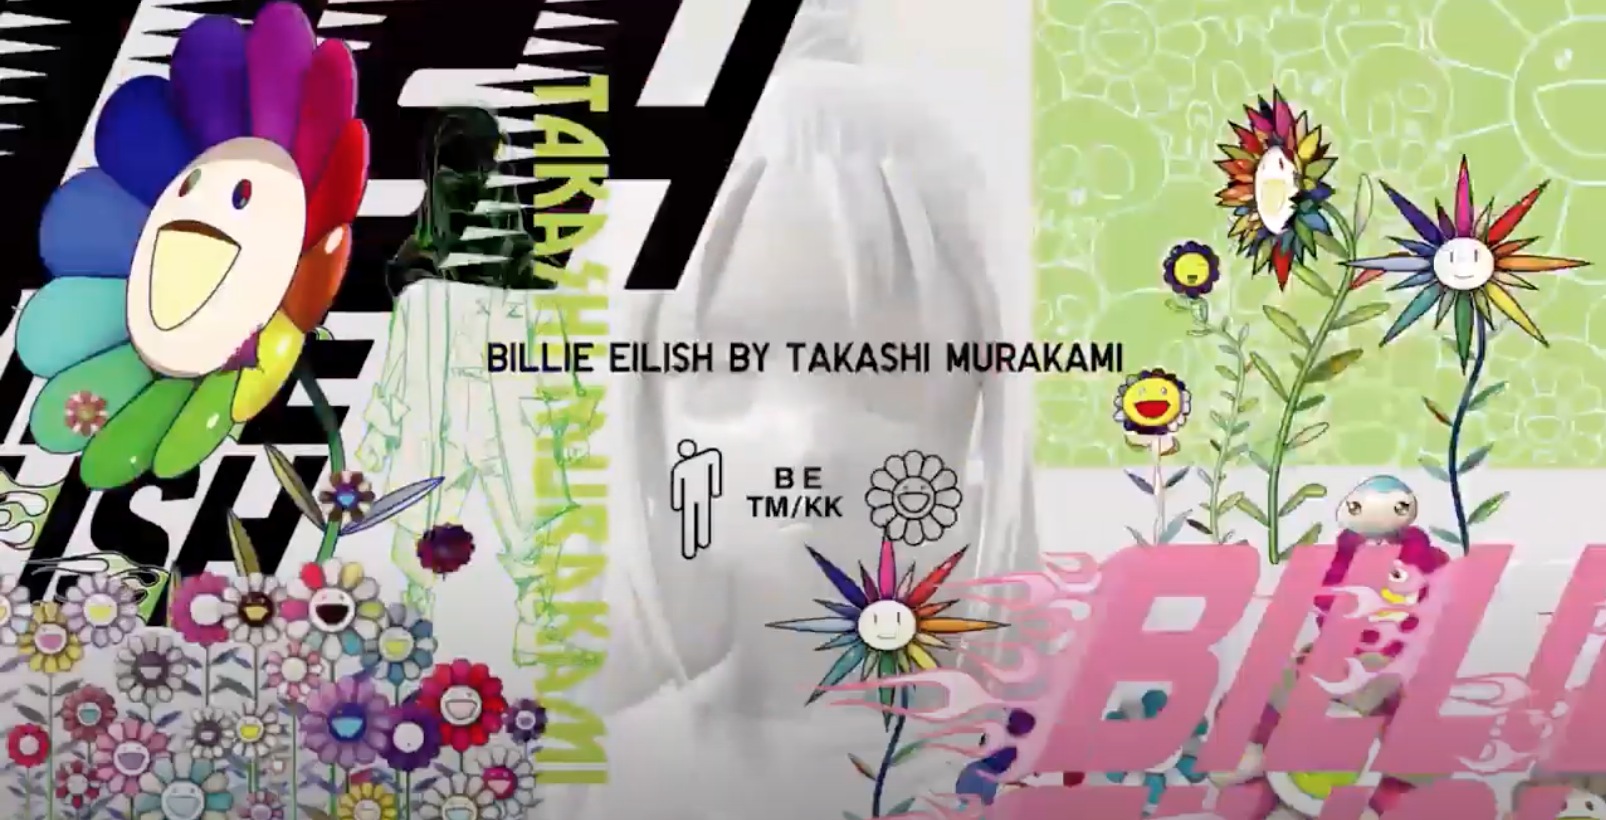 Billie Eilish and Takashi Murakami collaborate for a Uniqlo UT collection